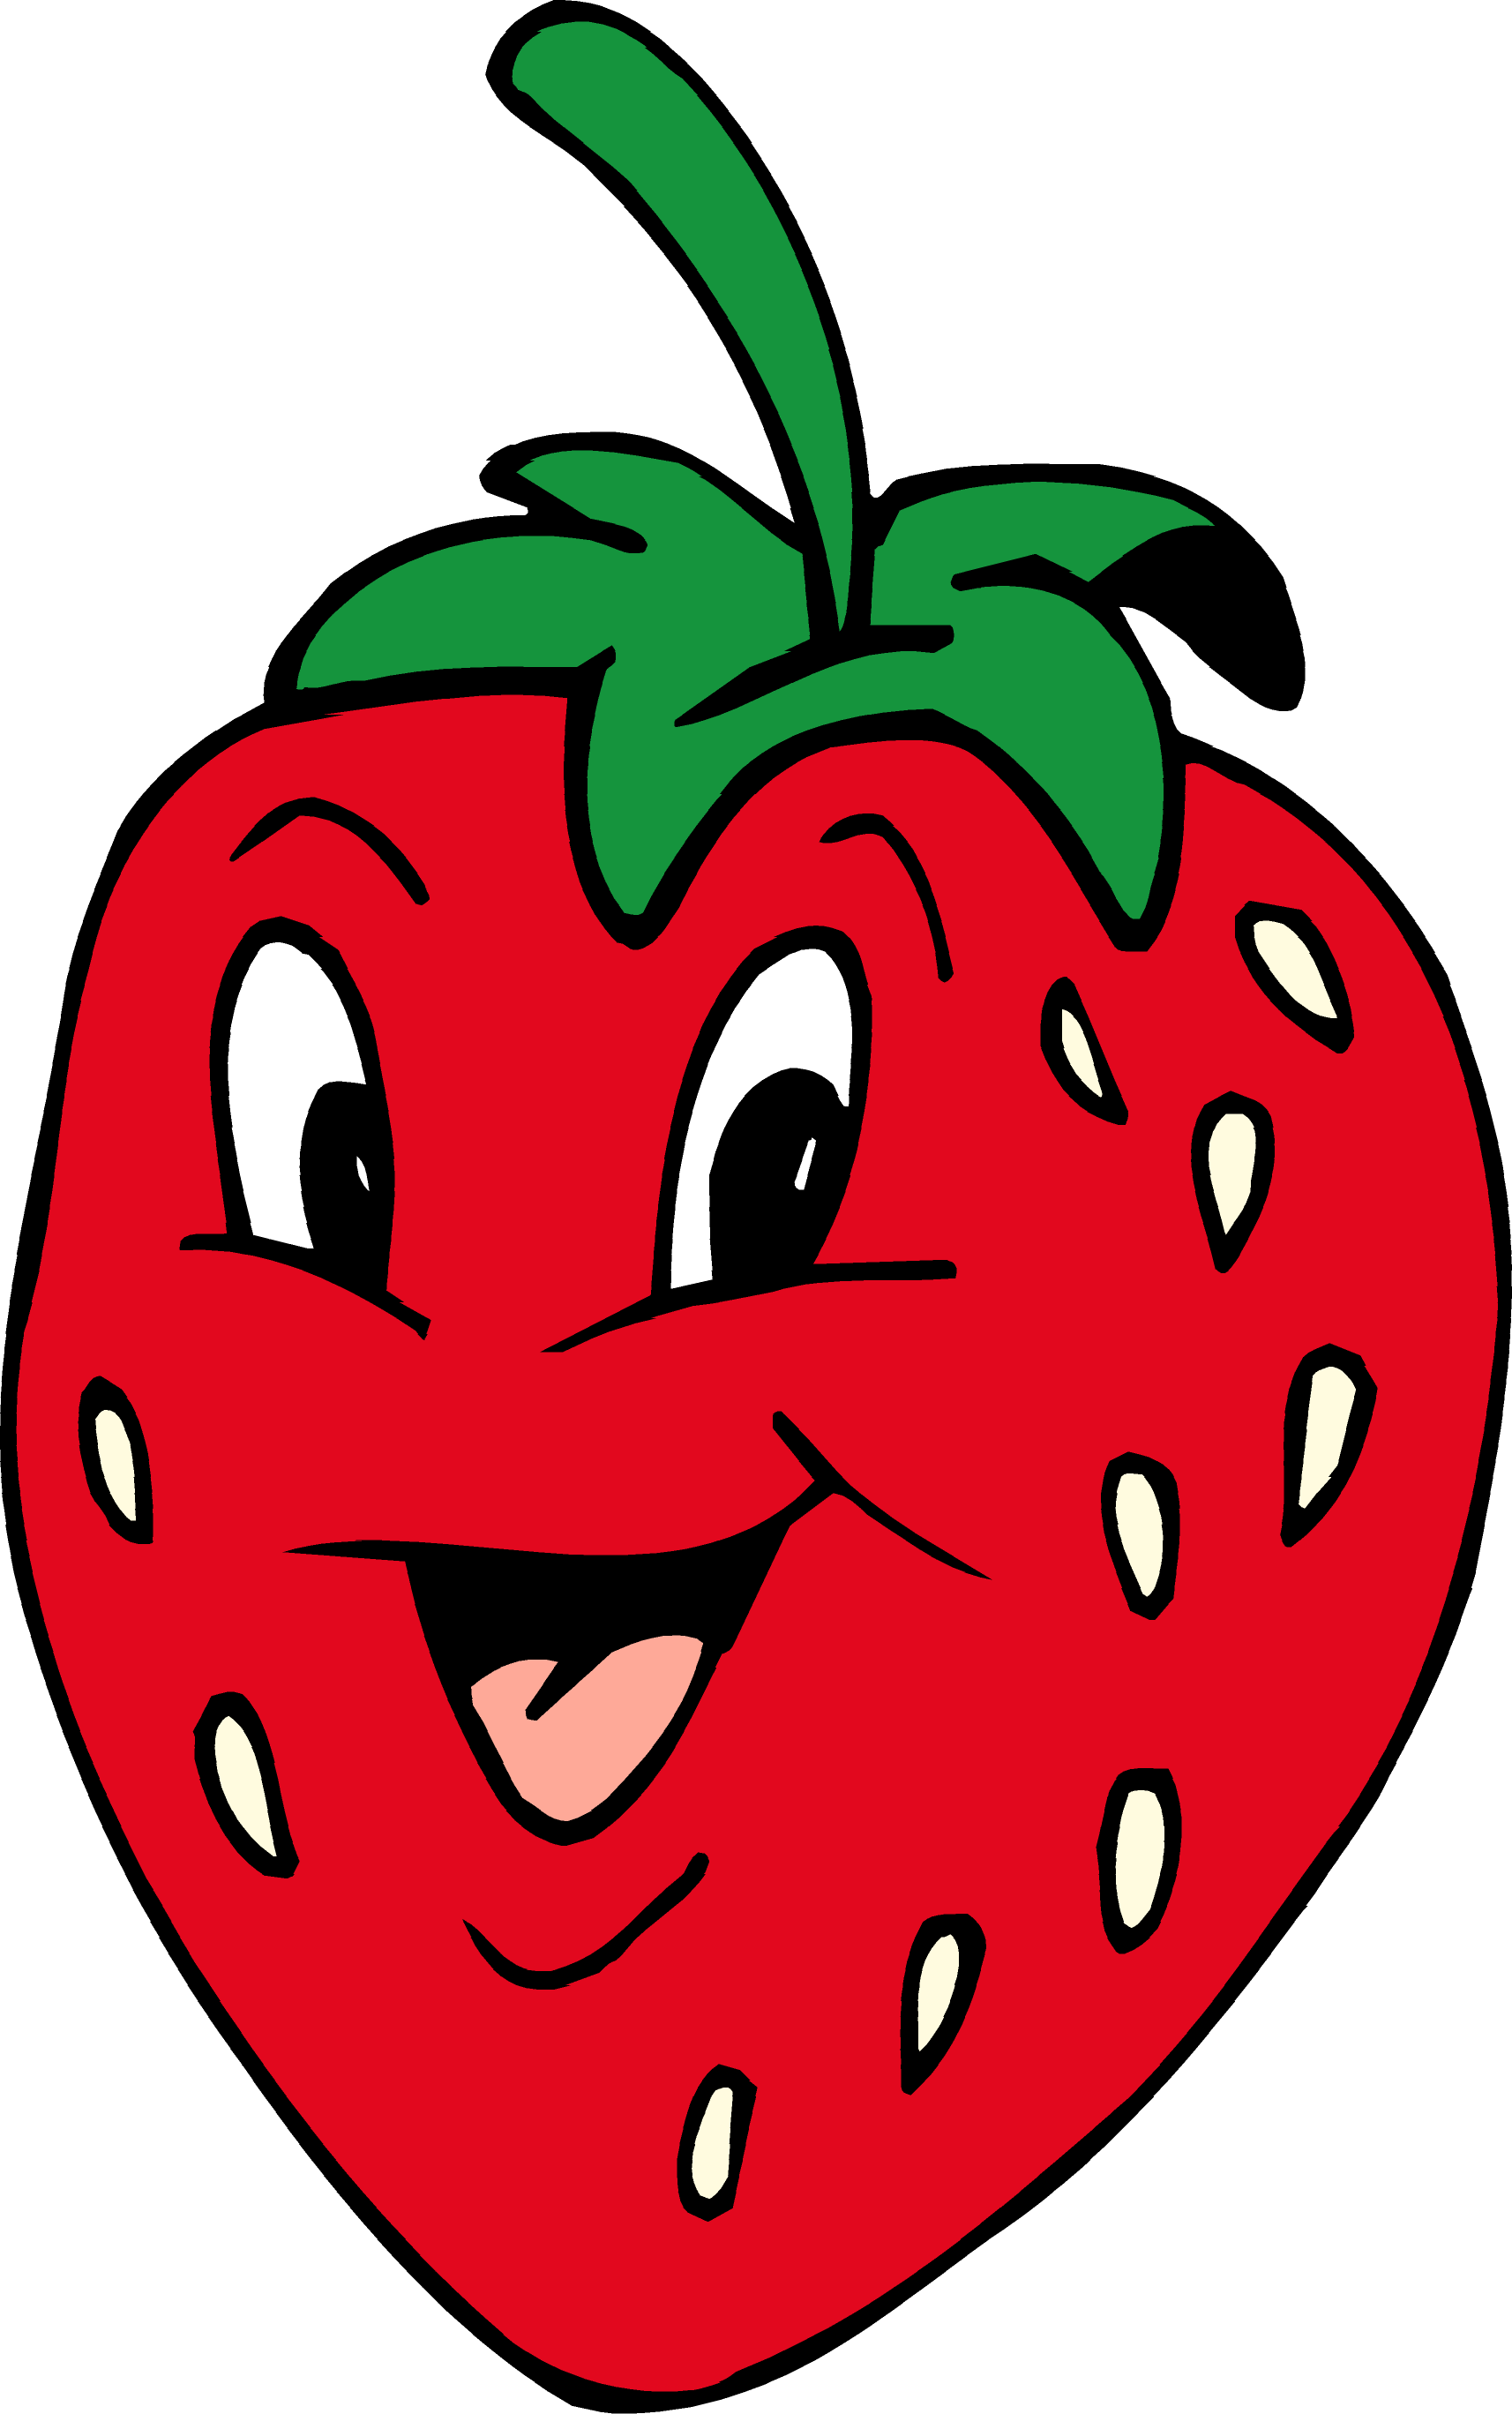 strawberry clip art pictures - photo #30